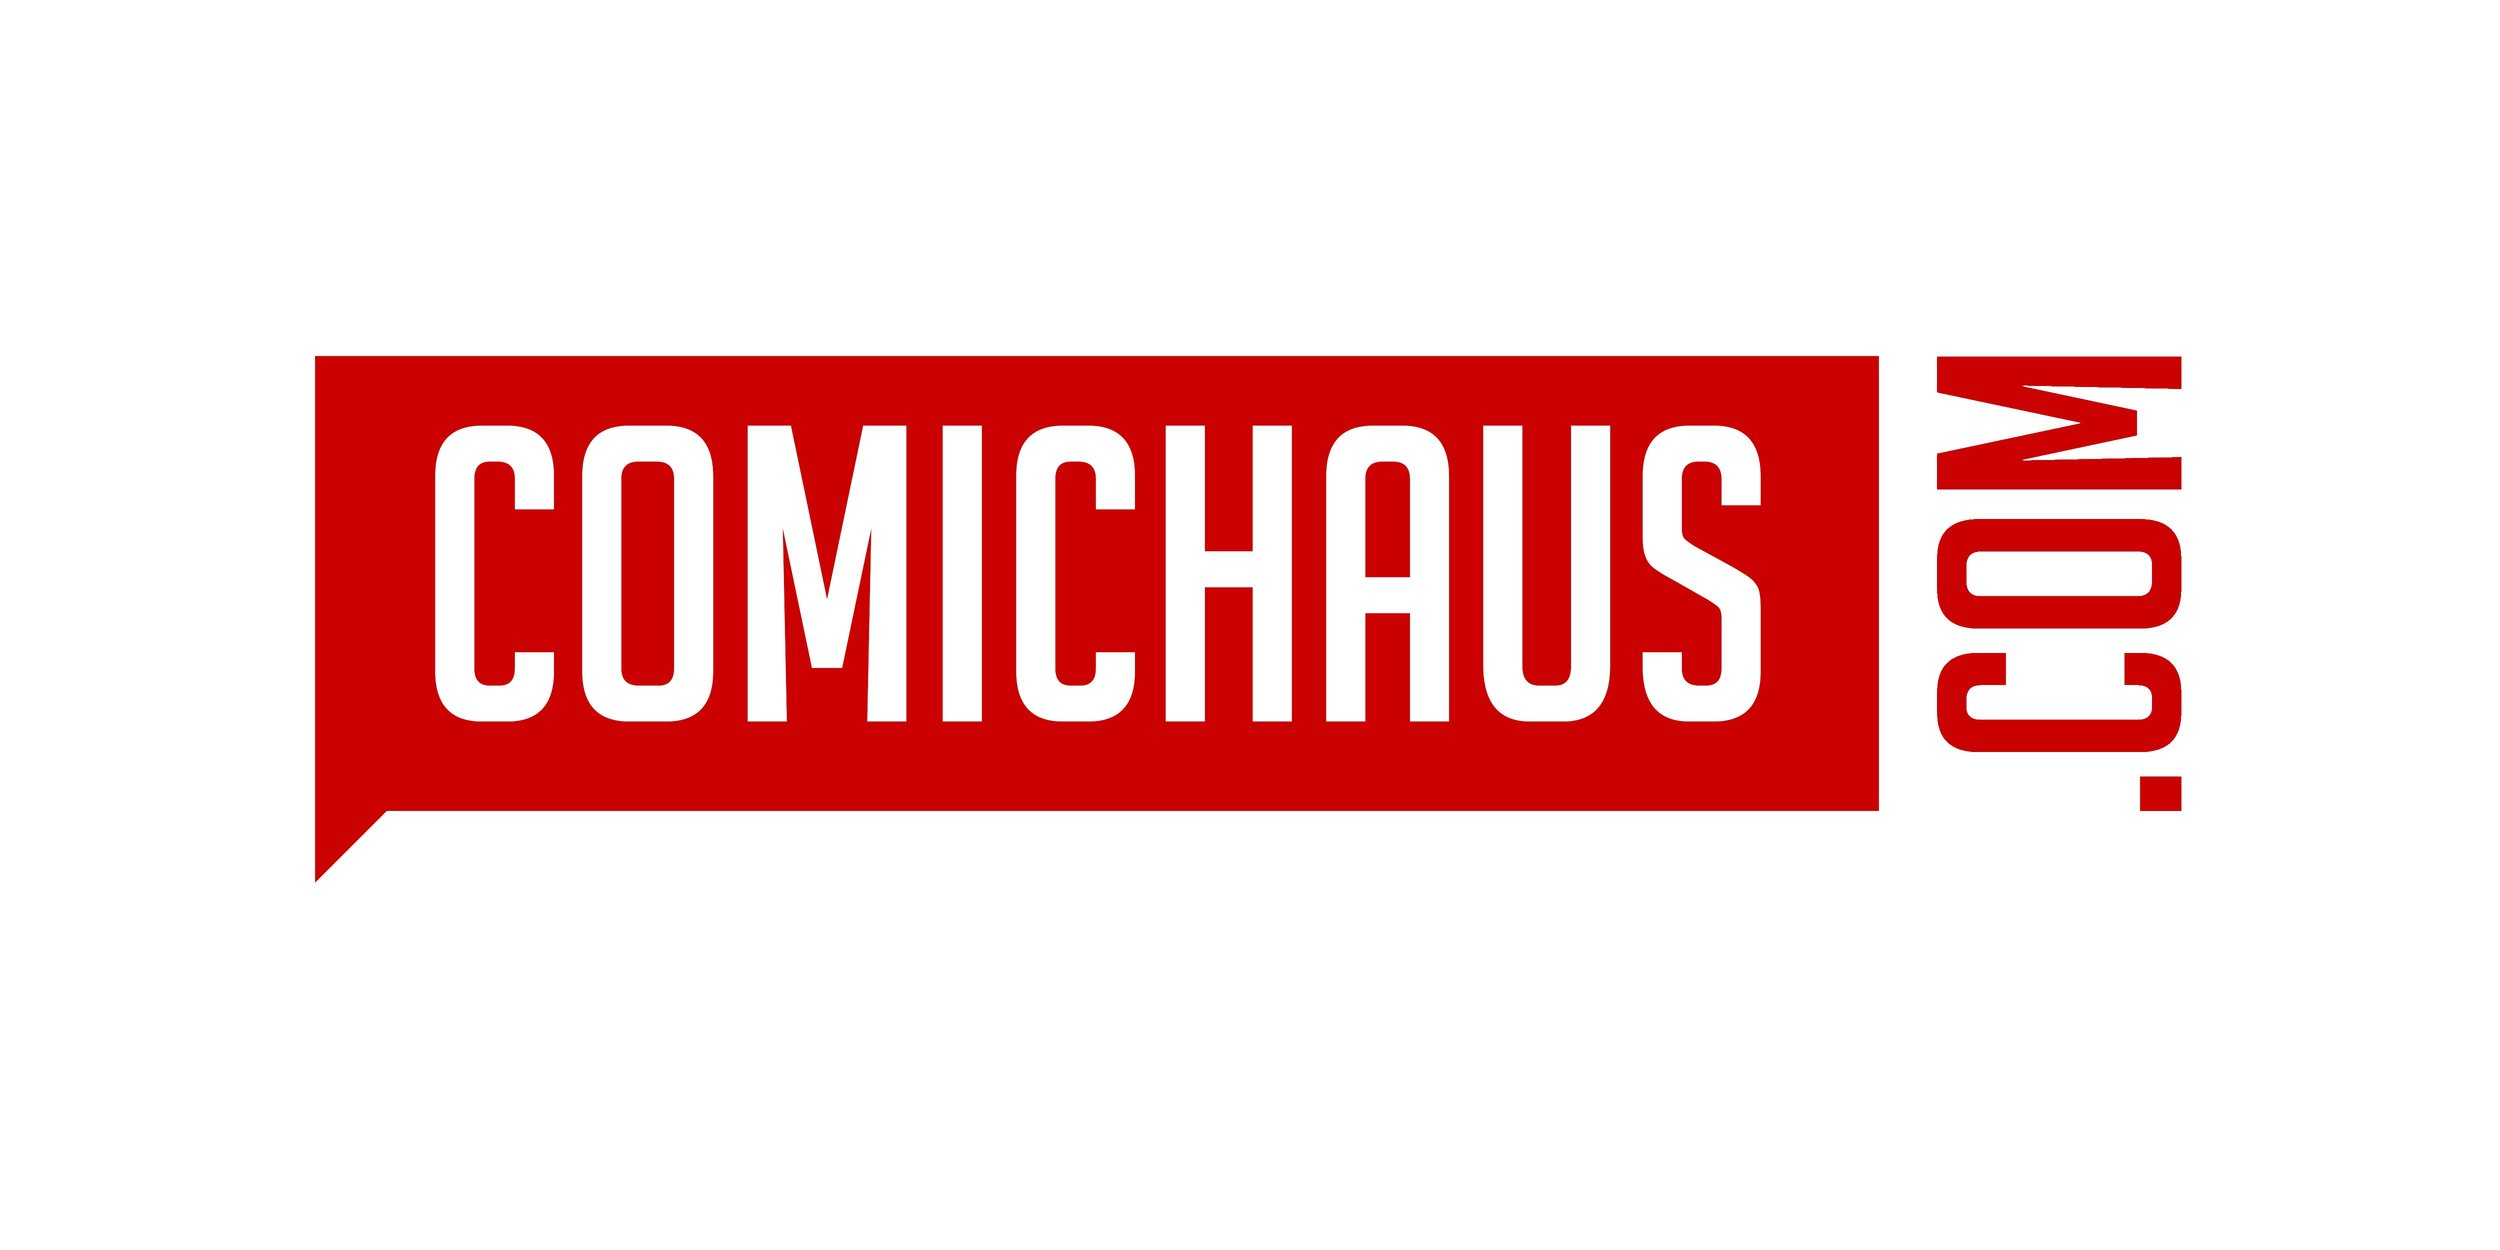 "COMICHAUS - The Comichaus app is essentially a ""Netflix for Indie Comics"", where readers can subscribe for £3 a month and stream hundreds of indie titles. Monies raised from advertising/subscription revenue is then split 50/50 with creators depending on how many times their books are read.We want the app to be the place for readers to discover the next generation of comic book creators as well as featuring catalogue classics.Creators/publishers are adding content every week, and readership is increasing, but we want to keep building the library as much as we can. This is the key to building up the subscribers so everyone can benefit. We believe it is an essential tool for increasing the profile of indie creators and will help lead to more print sales for themDownload the app to try it for free for 14 daysWEBSITETAKES CARD PAYMENTS"